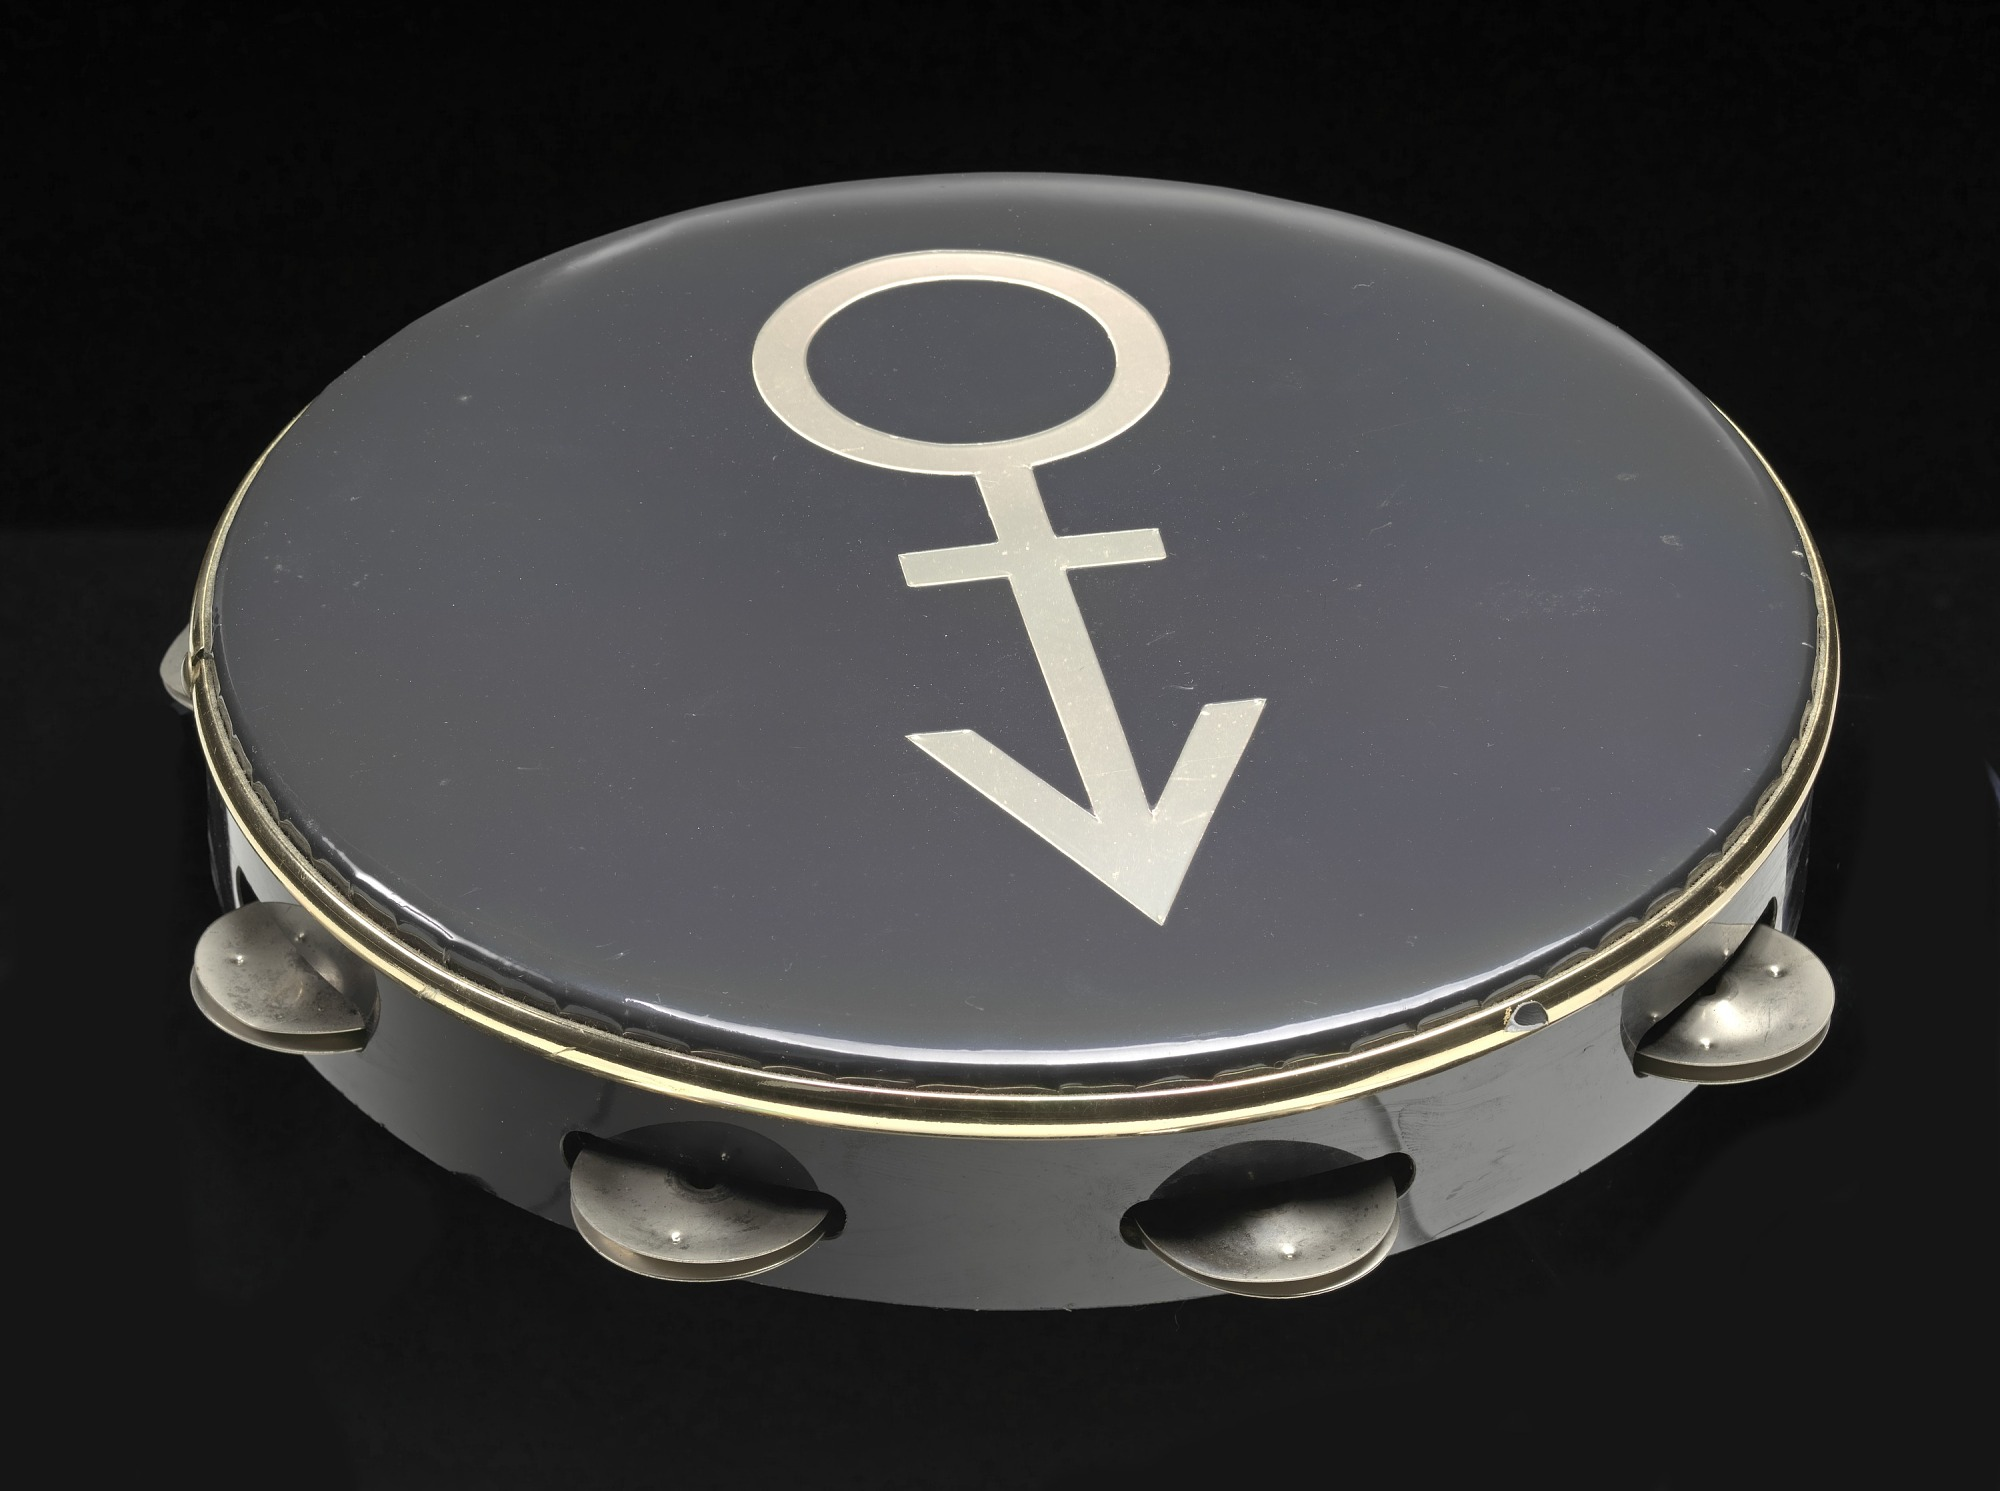 Image 1 for Tambourine used on stage at Wembley Stadium during Prince's Nude Tour